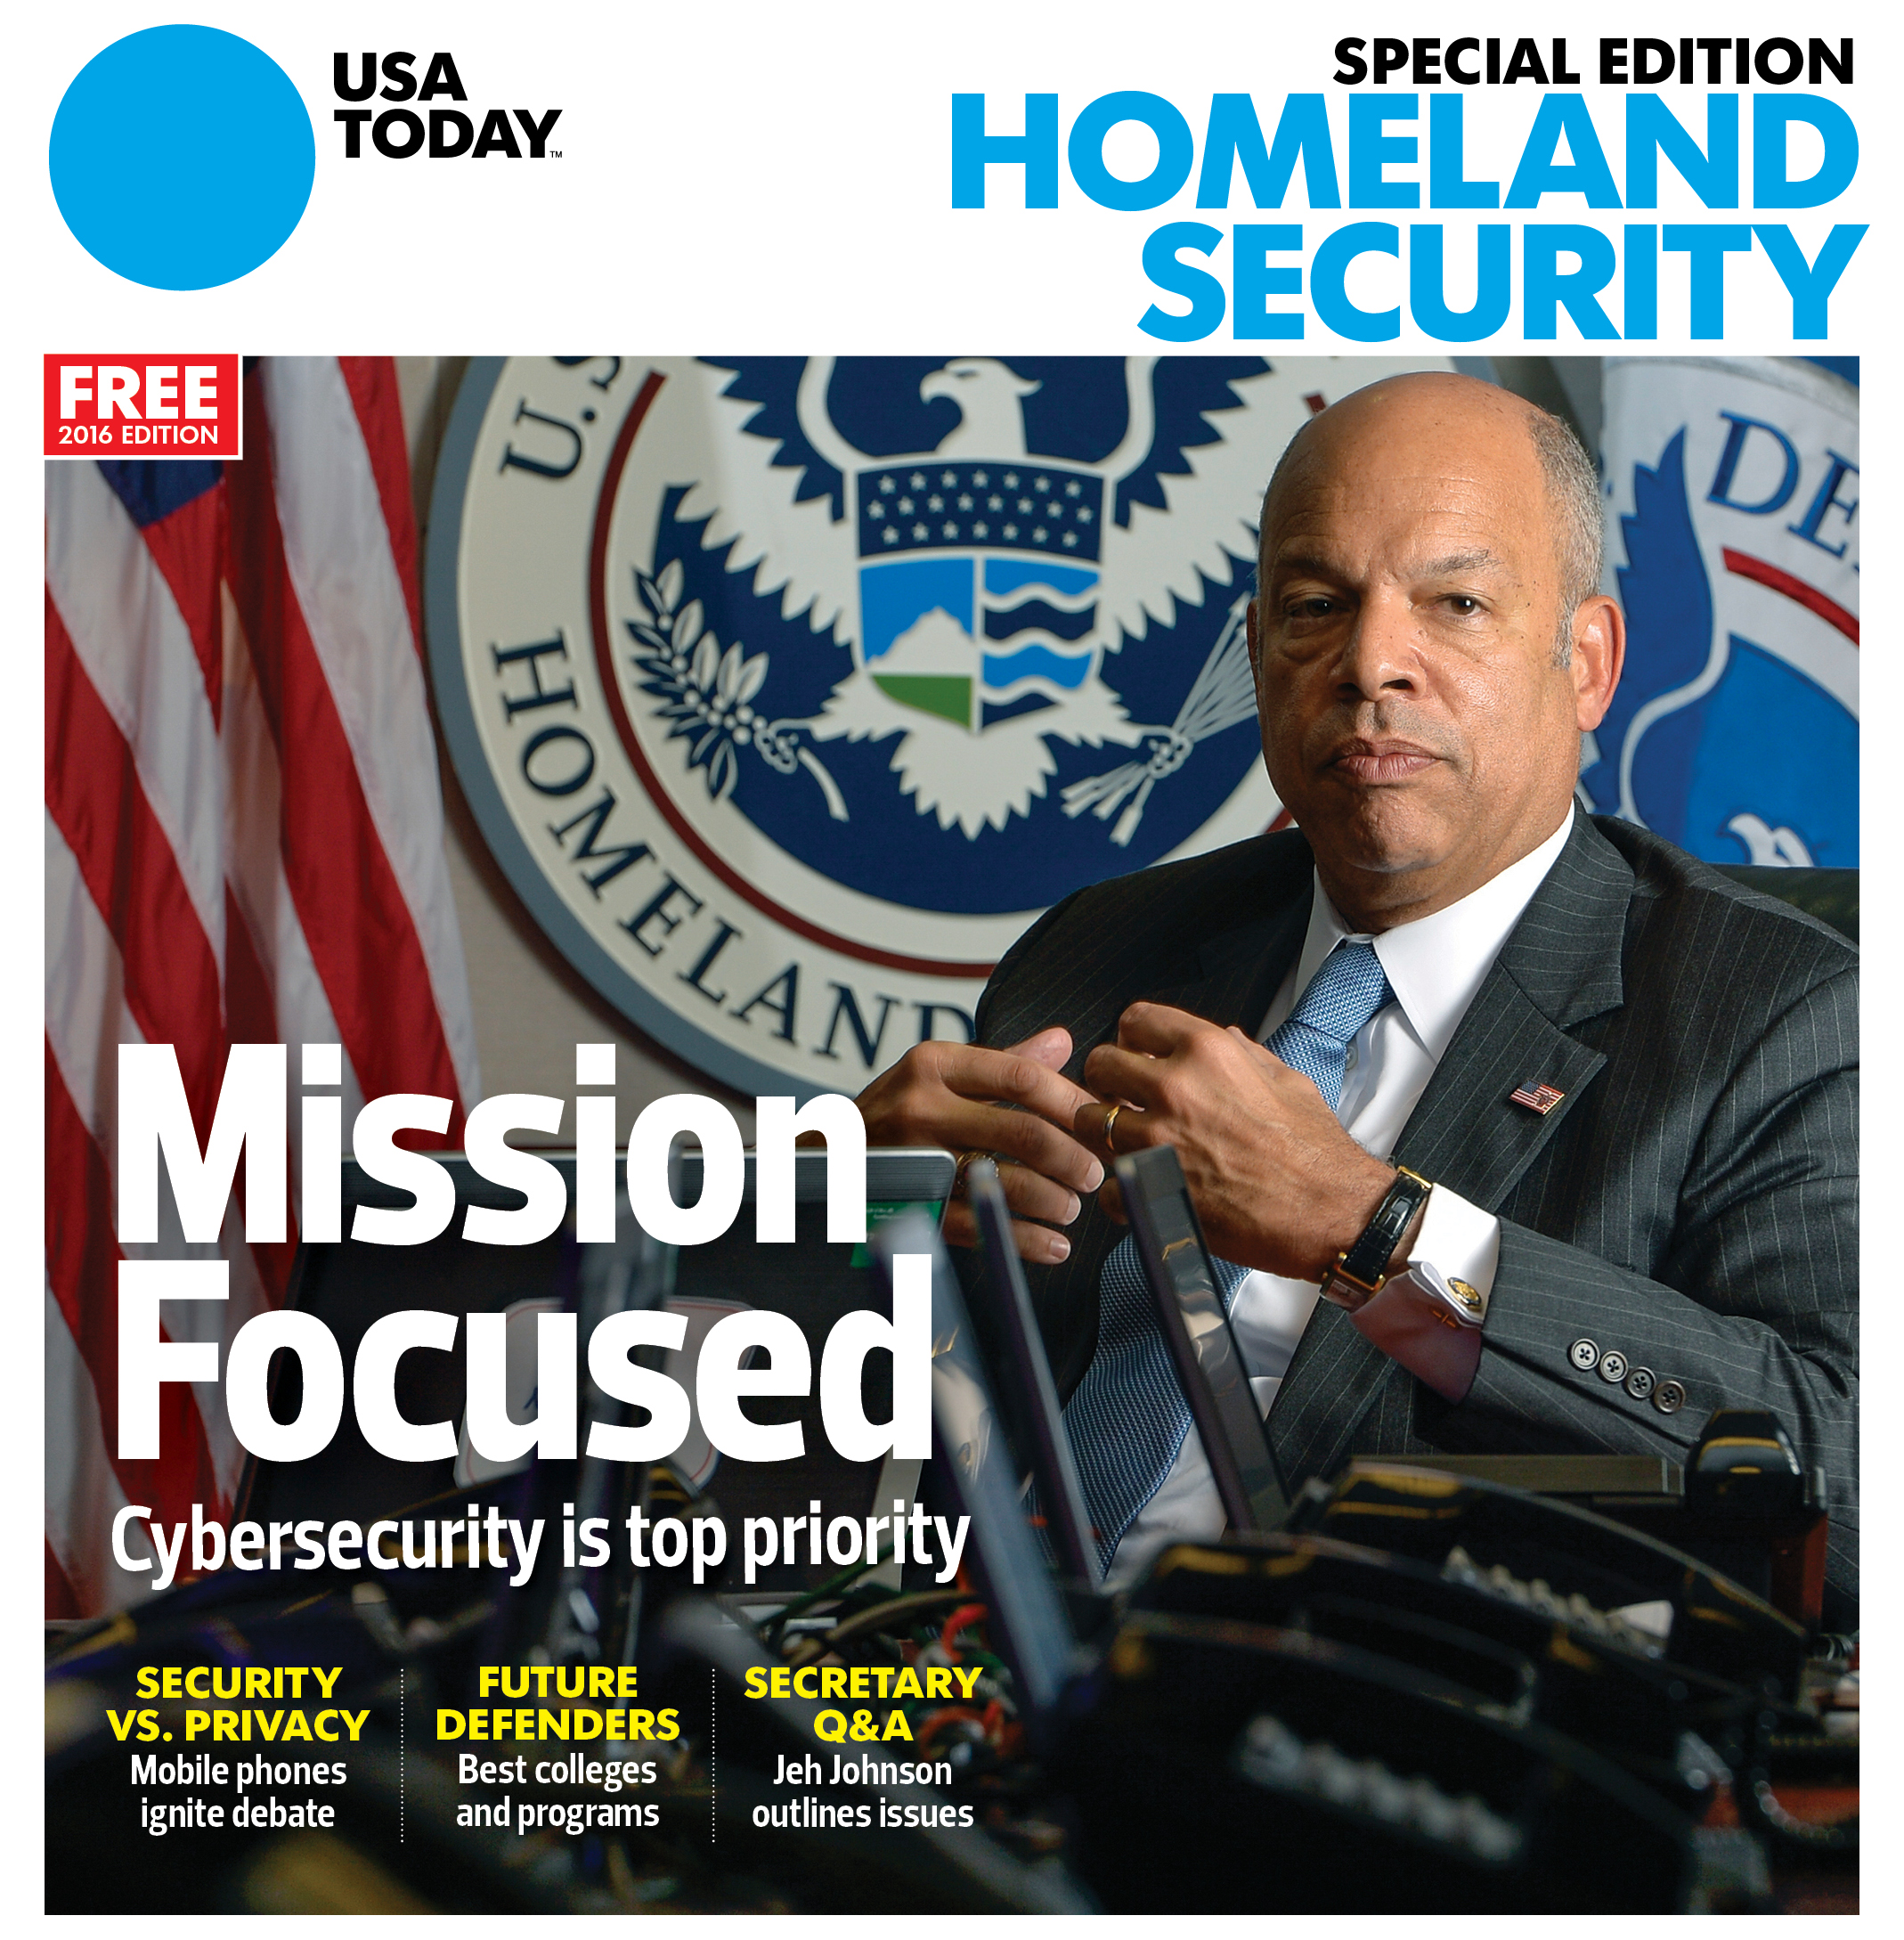 HOMELAND SECURITY cover.jpg